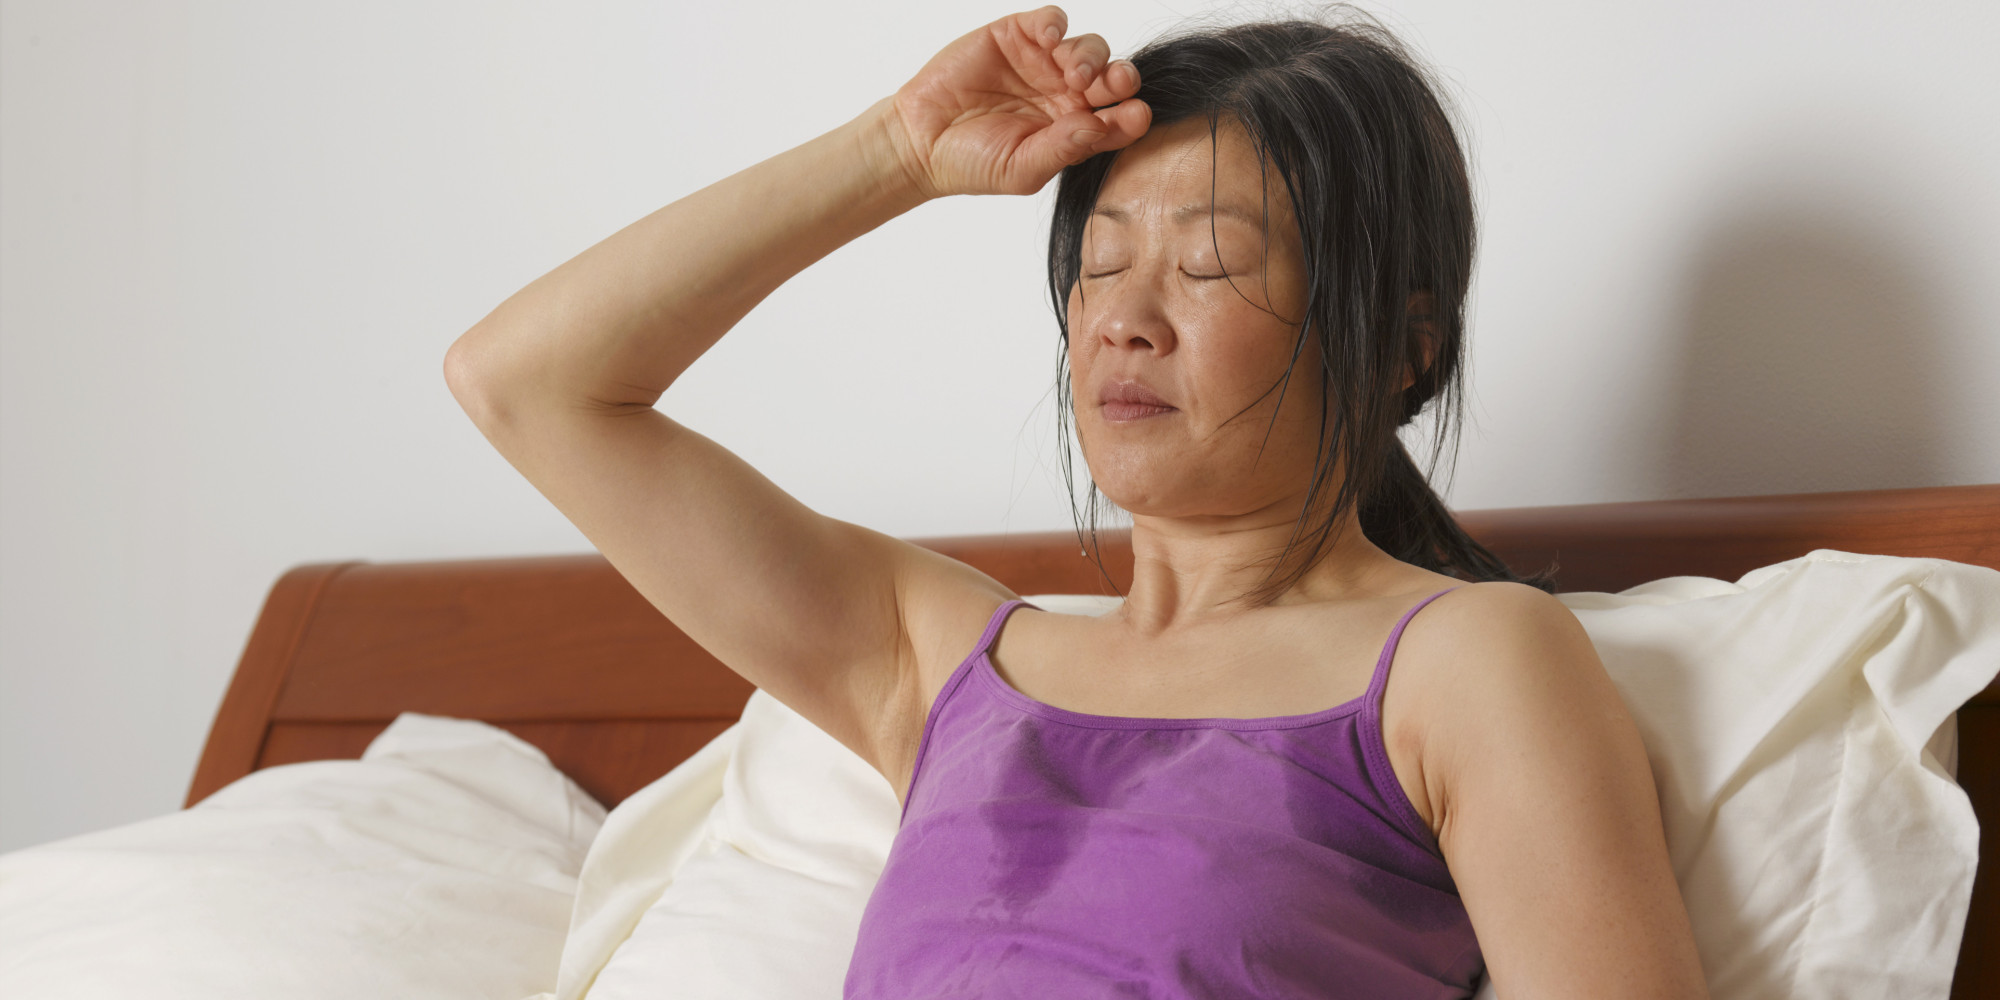 Menopause Symptoms Could Last